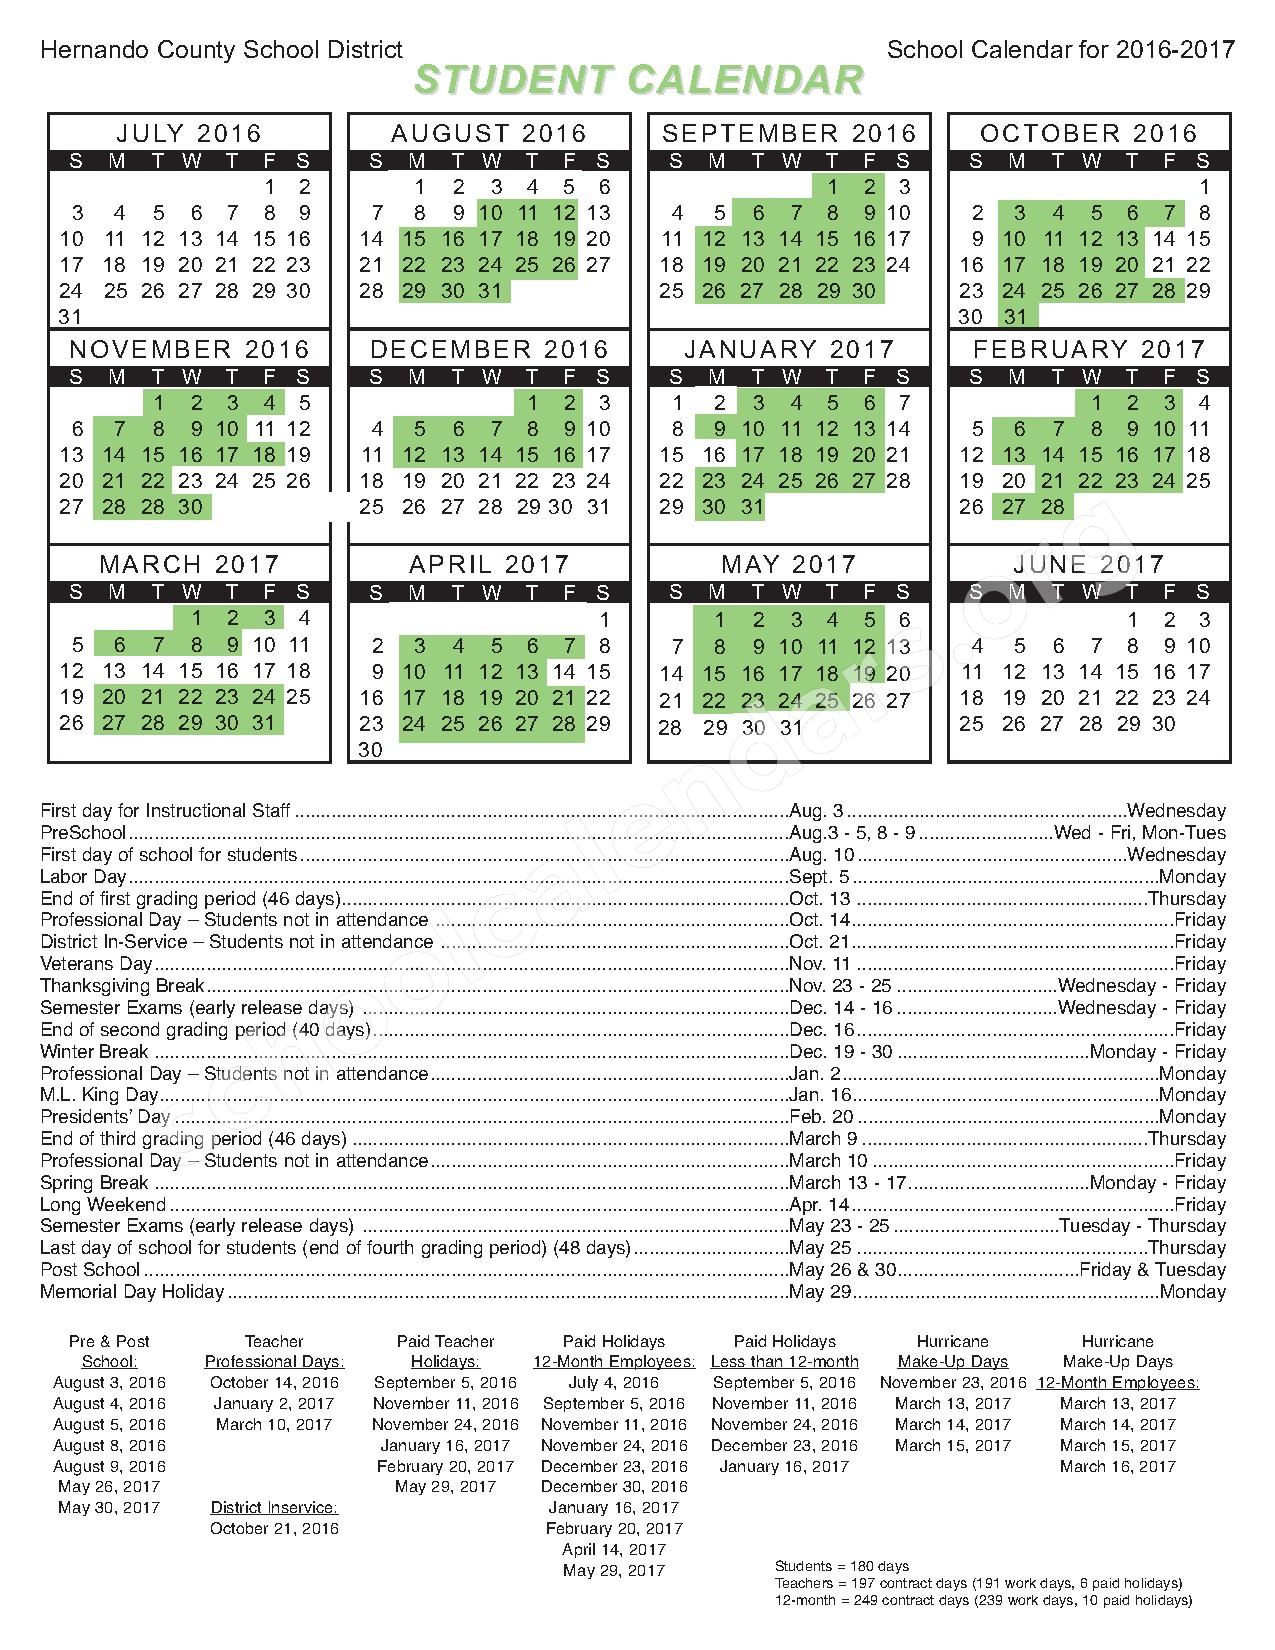 2016 - 2017 Student Calendar – Gulf Coast Academy of Science and Technology – page 1